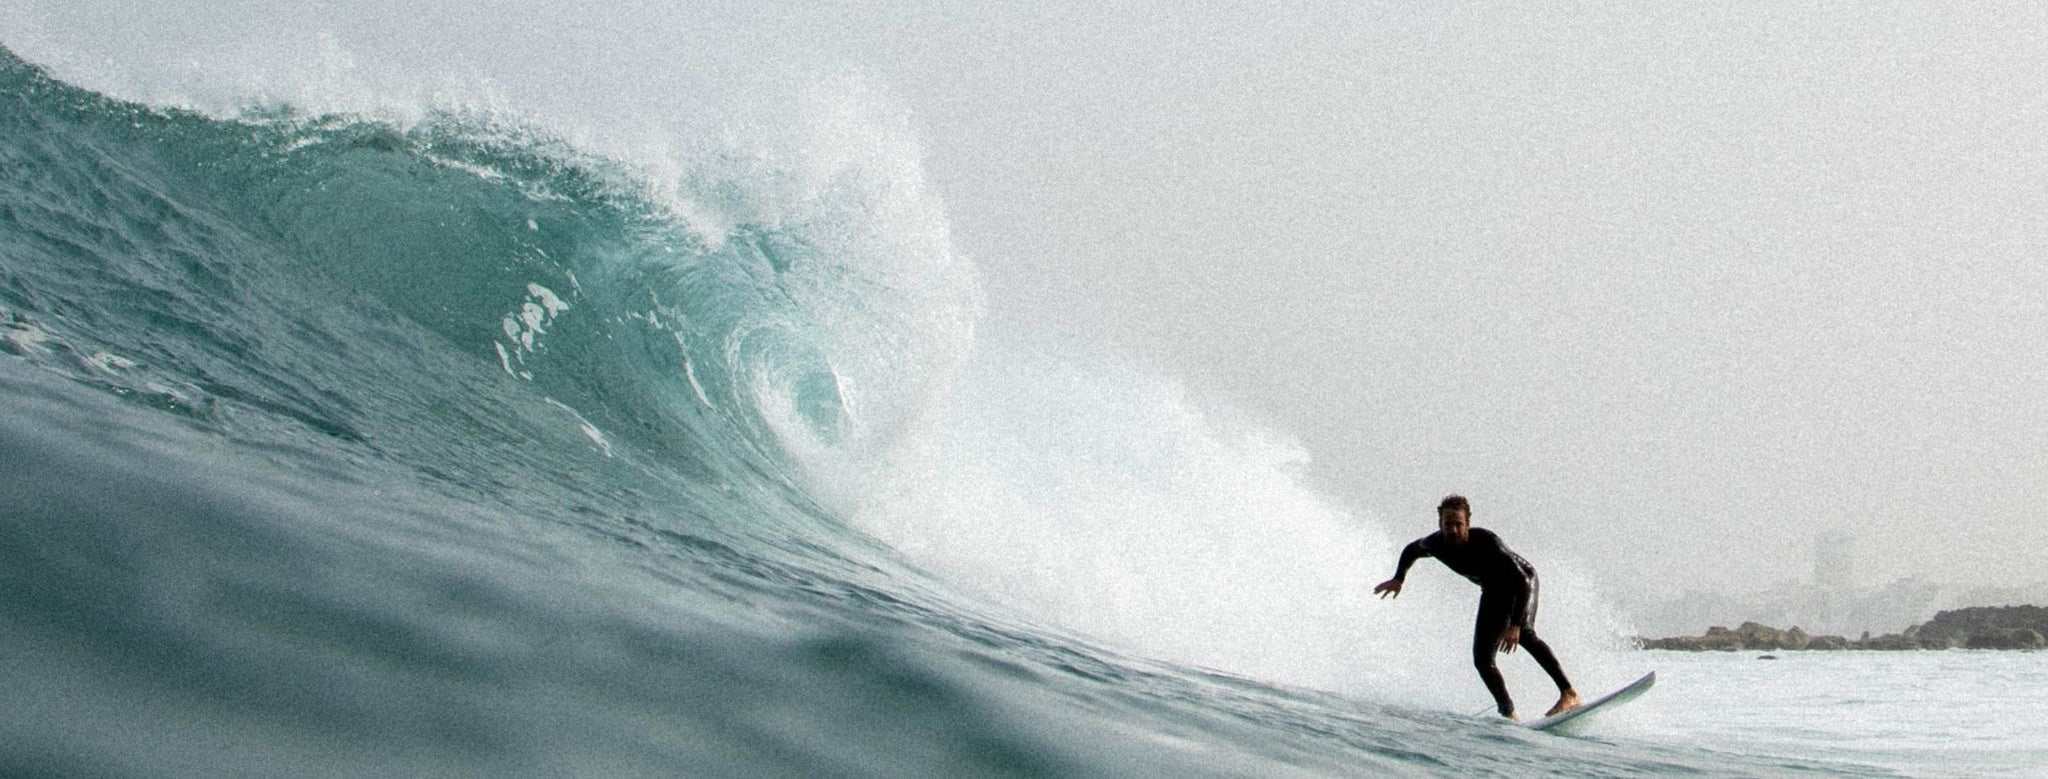 surfer on the bottom of a large wave in the ocean at the coast of the canary islands surfing